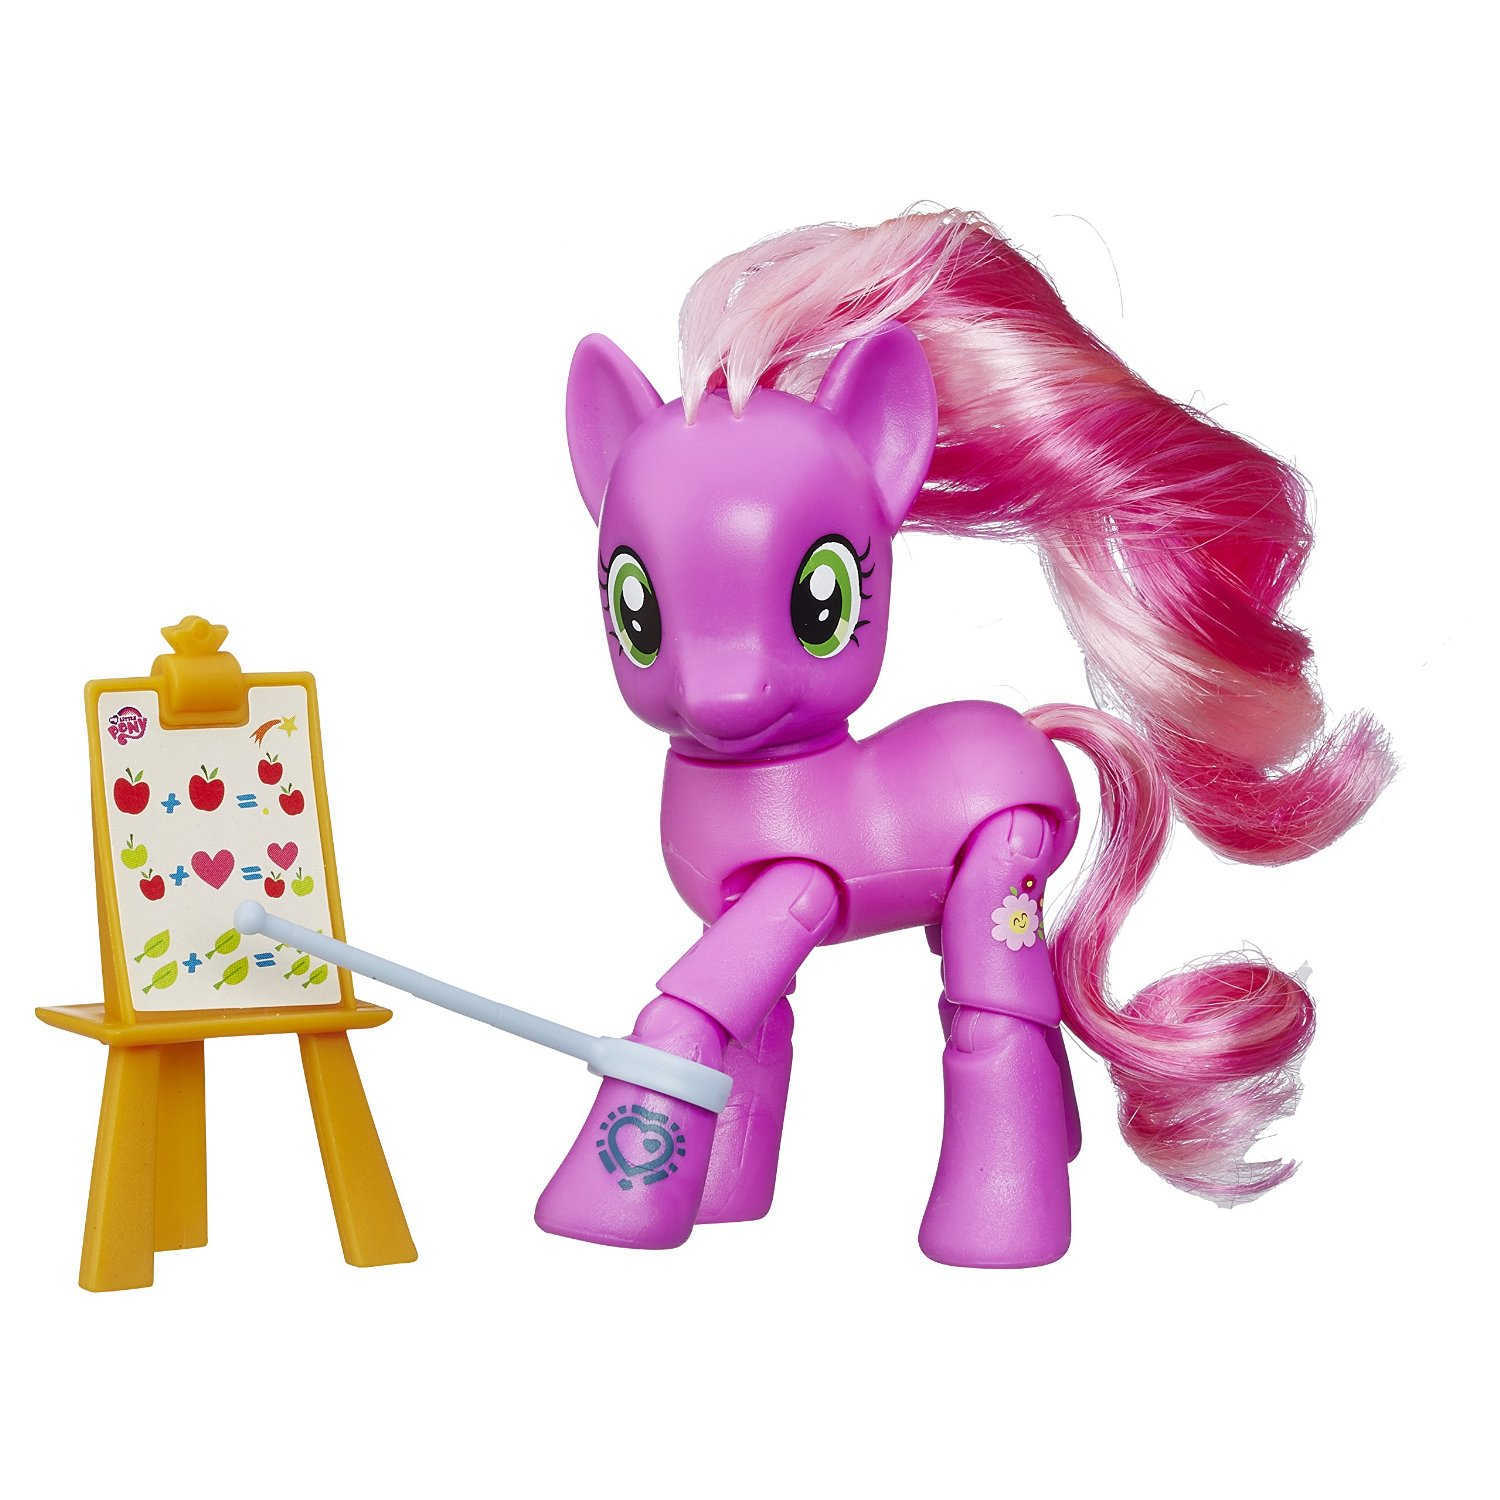 My Little Pony Toys : New poseable brushables listed on amazon mlp merch